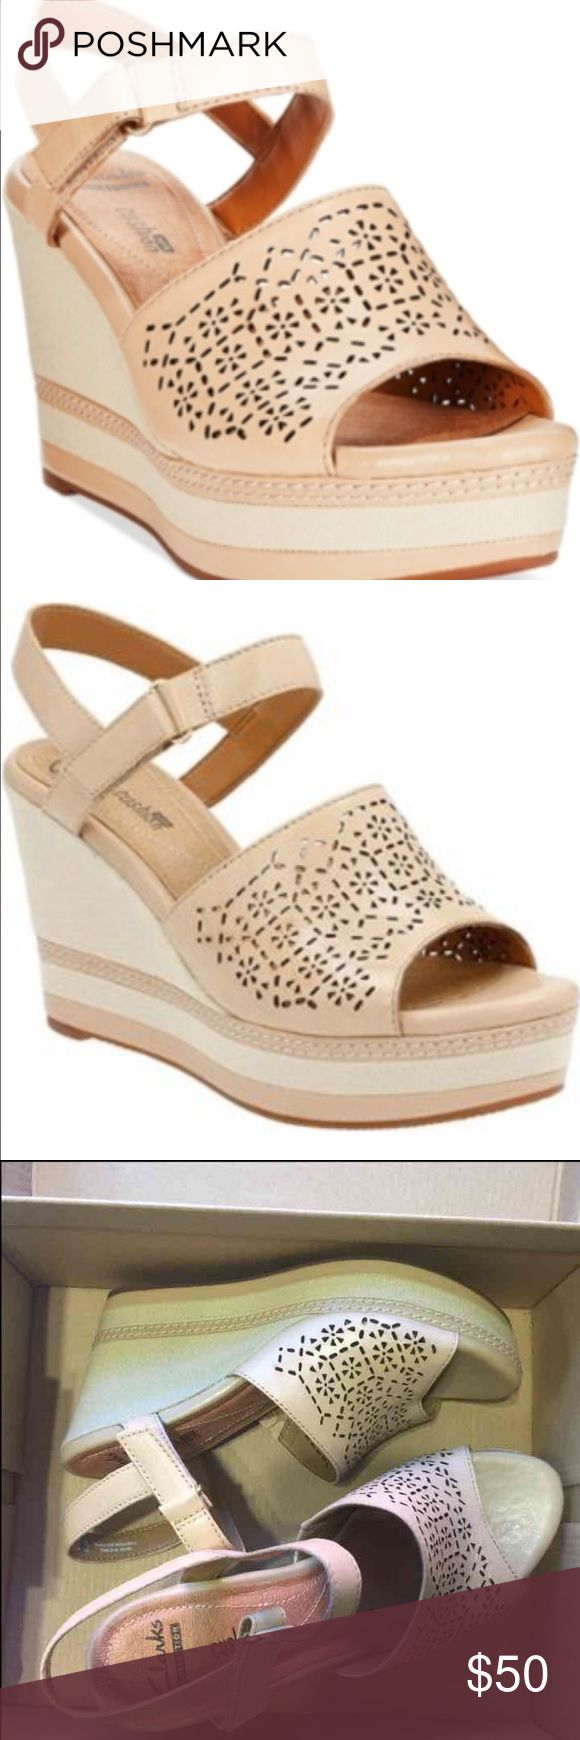 Clark shoes. 8 Zia grace nude leather wedges. New with box. Retail $95 Clarks Shoes Wedges